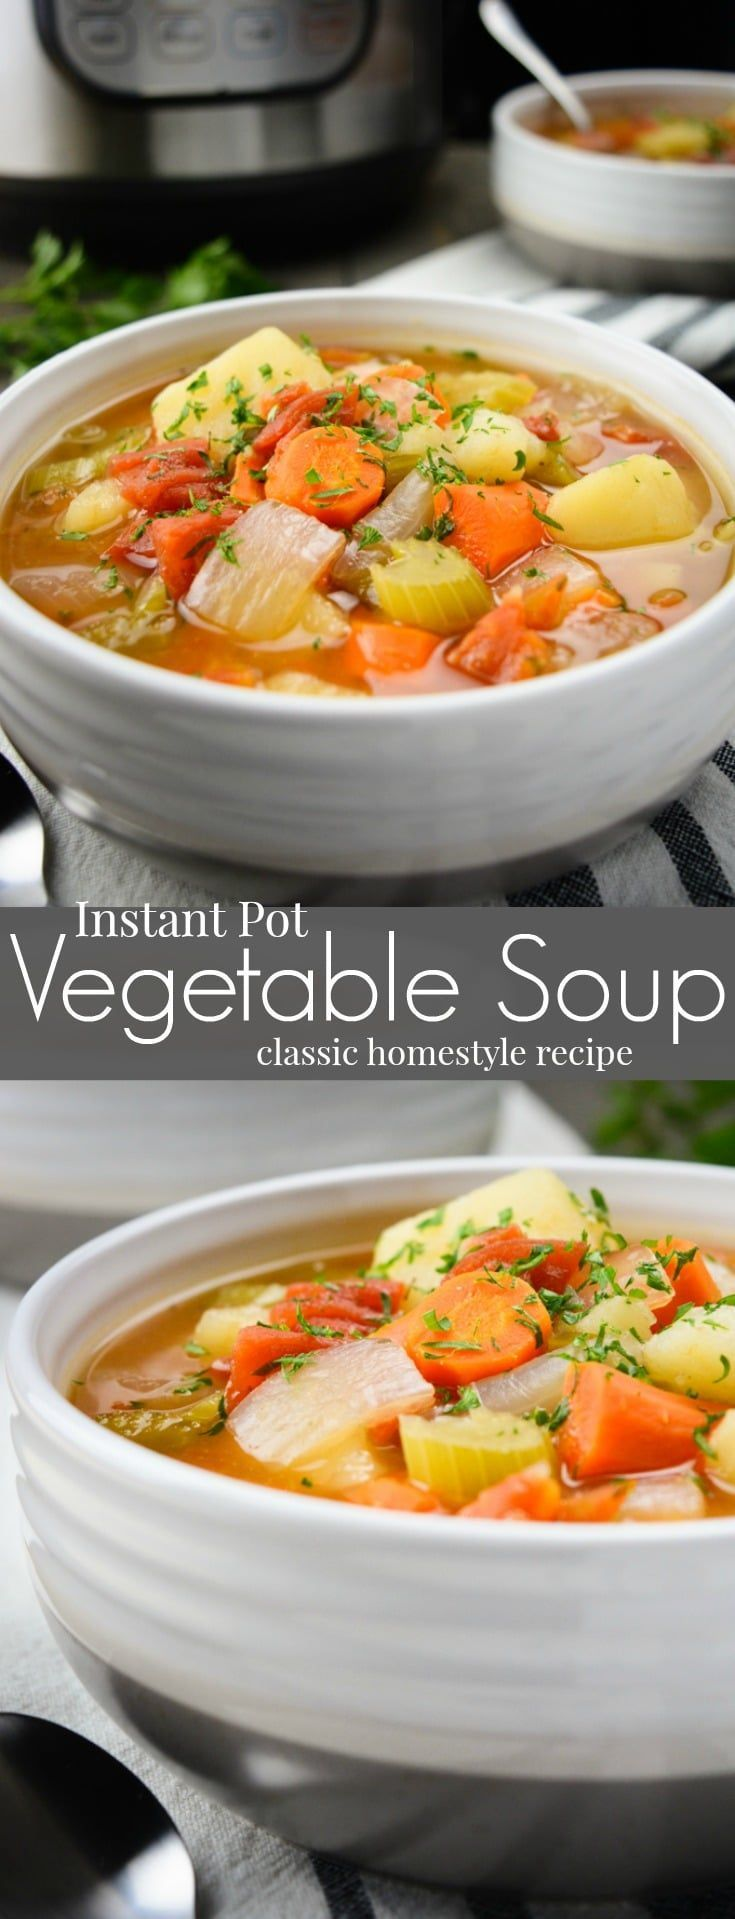 Instant Pot Vegetable Soup is a classic homestyle recipe made with simple ingredients.  It's super easy to bring together making it an ideal weeknight dinner.  This healthy & flavorful chunky vegetable soup is vegan, vegetarian, gluten free and allergy friendly! #vegan #vegansoup #instantpotsoup #instantpotrecipe #vegetablesoup #instantpot #healthy #dairyfree #WYGYP via @WYGYP